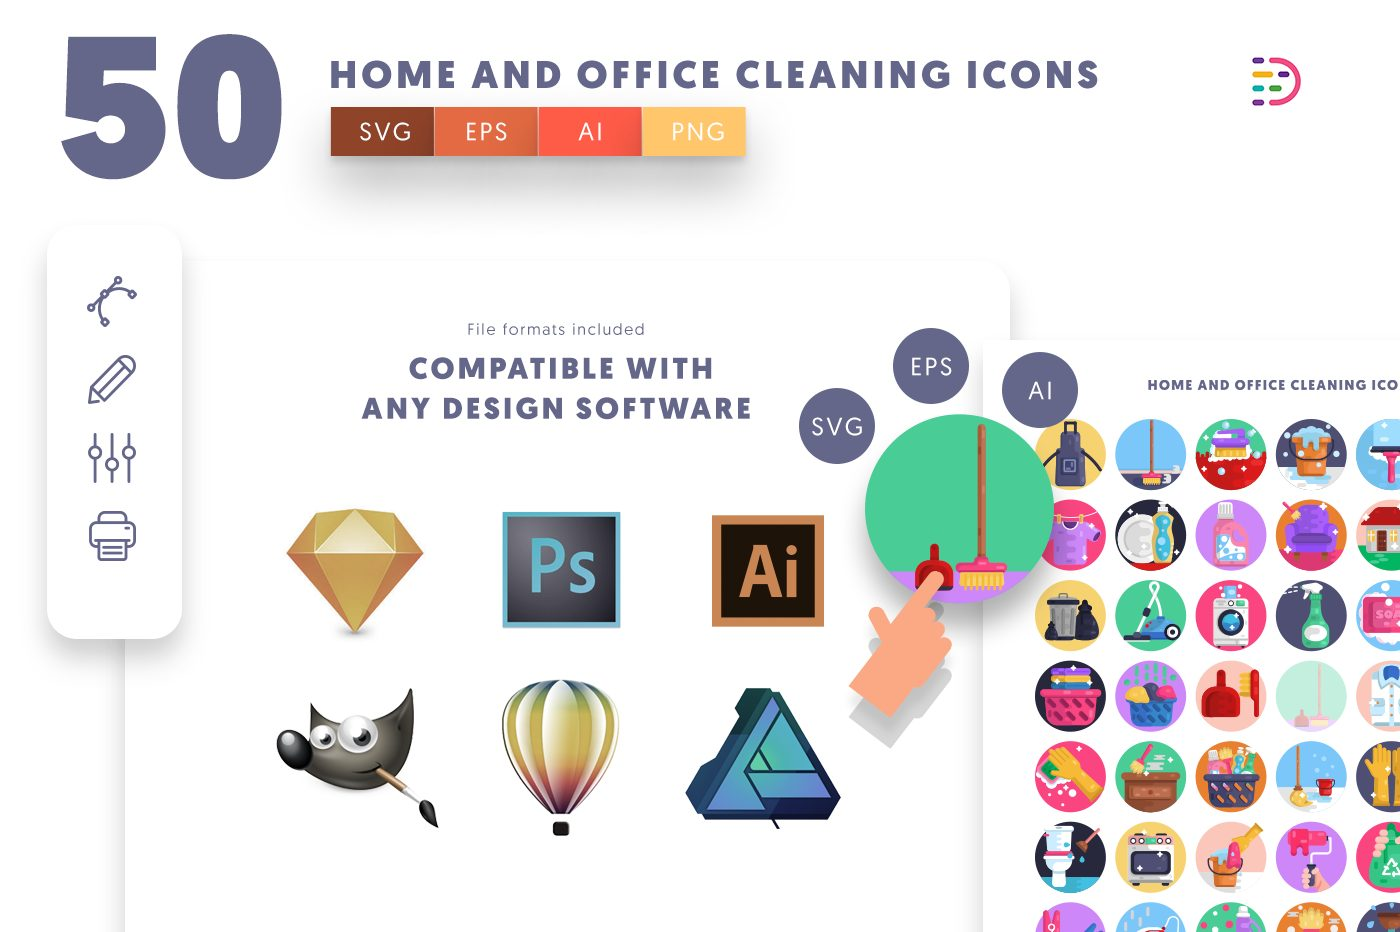 full vector 50 Home and Office Cleaning Icons EPS, SVG, PNG